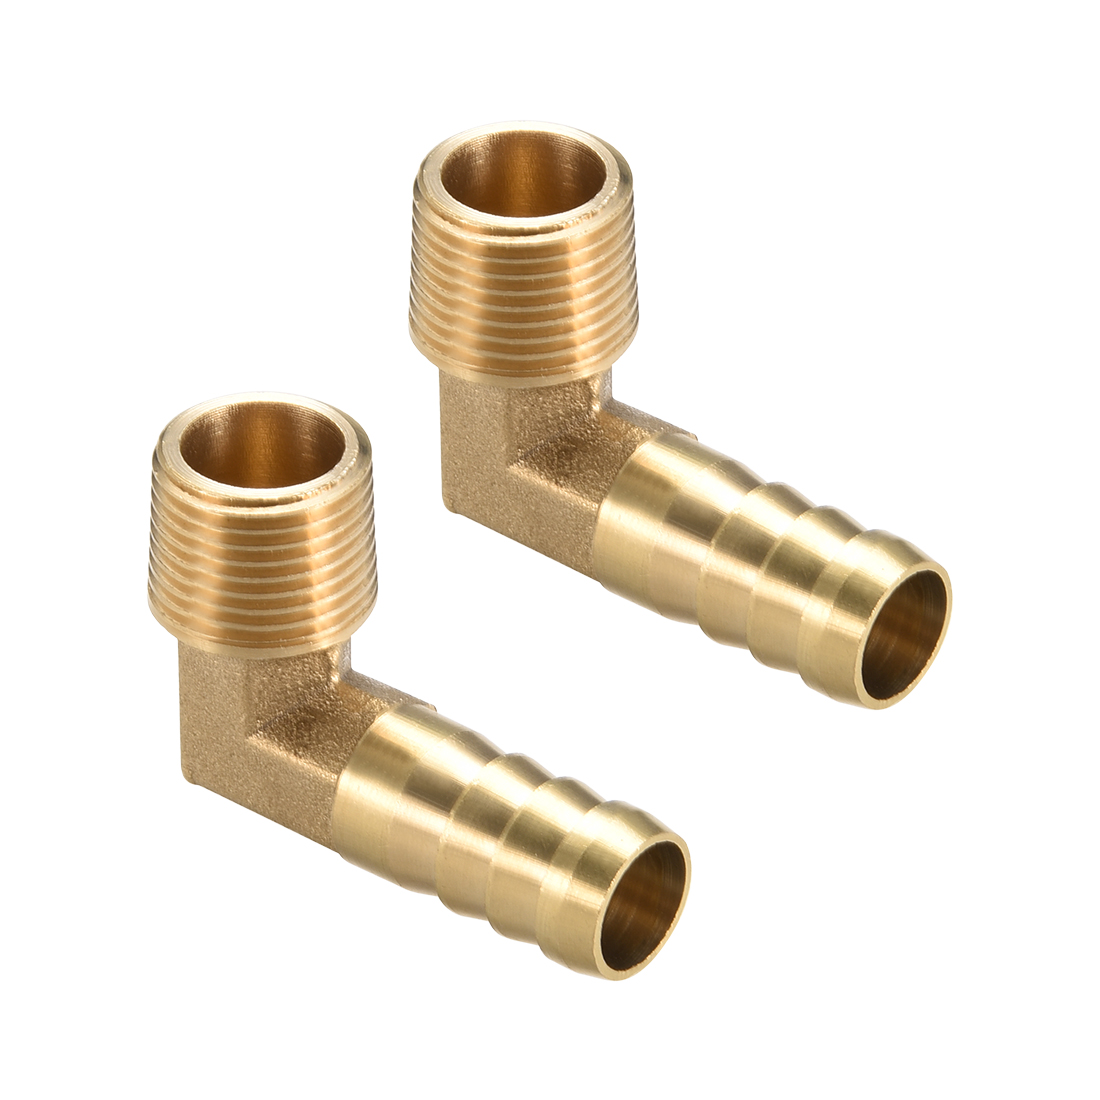 "Brass Barb Hose Fitting 90 Degree Elbow 12mm Barbed x 3/8"" G Male Pipe 2pcs"